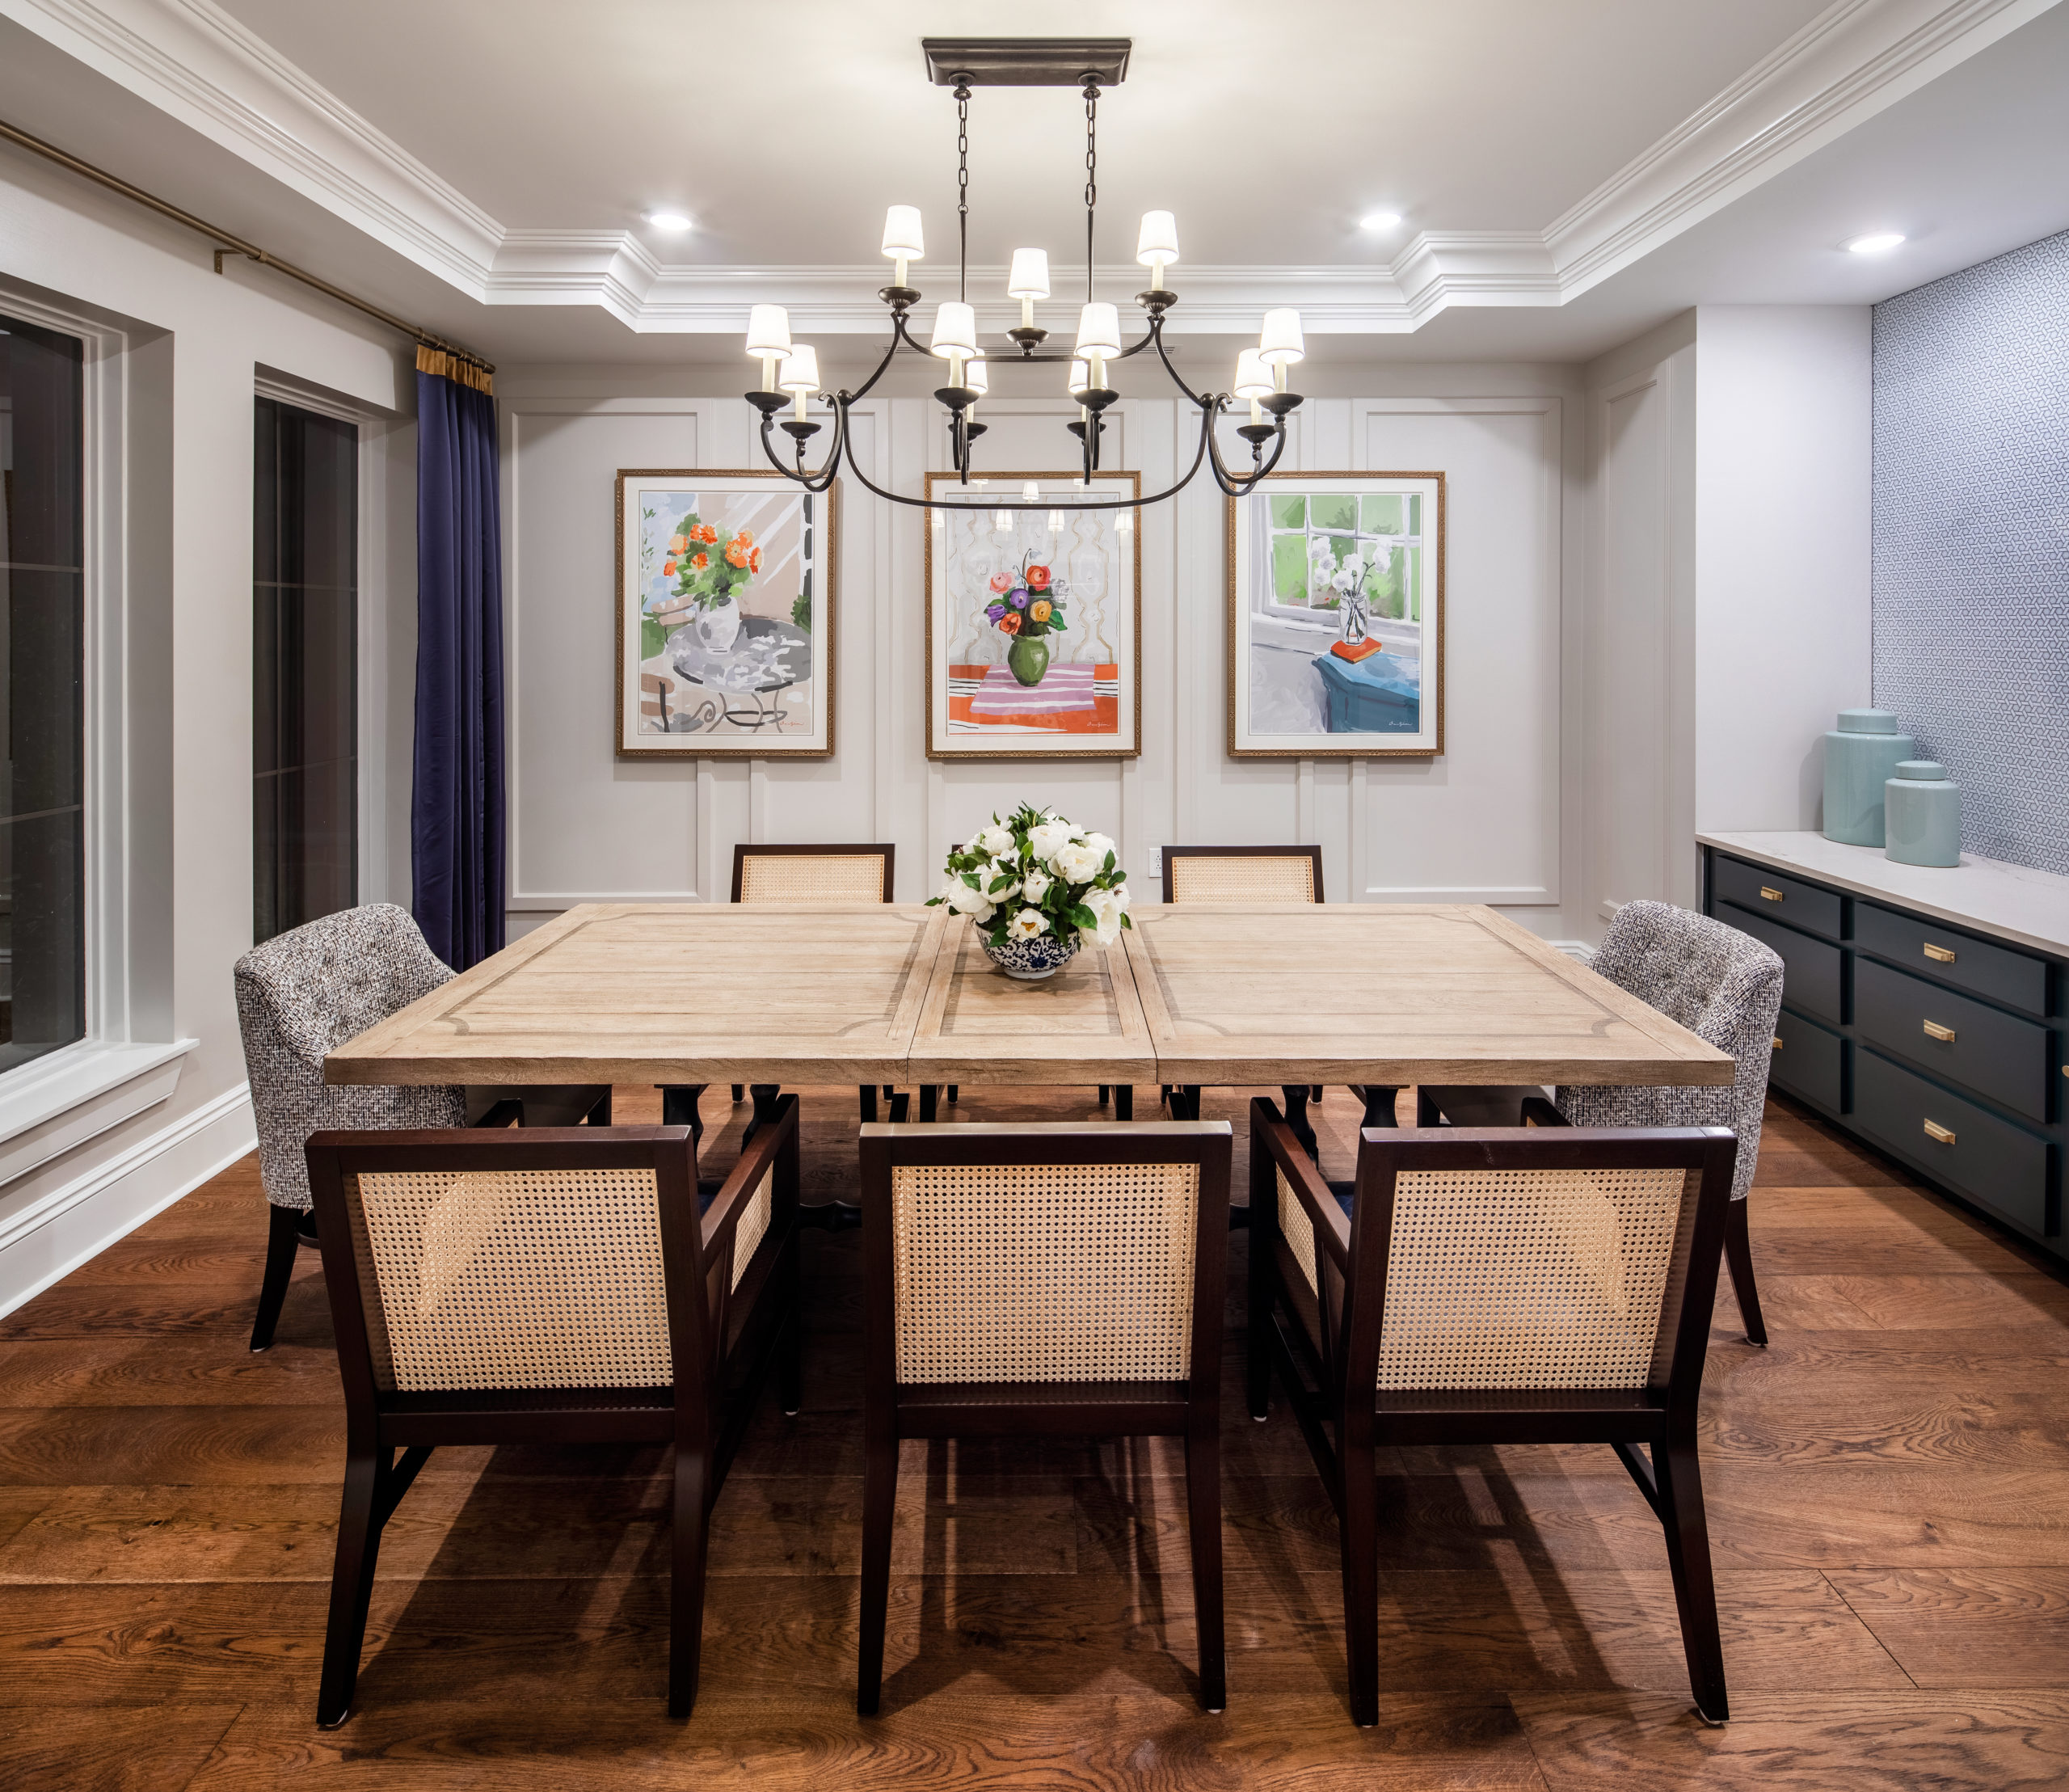 Longleaf private dining room with formal table and chairs with framed art on walls and chandelier above